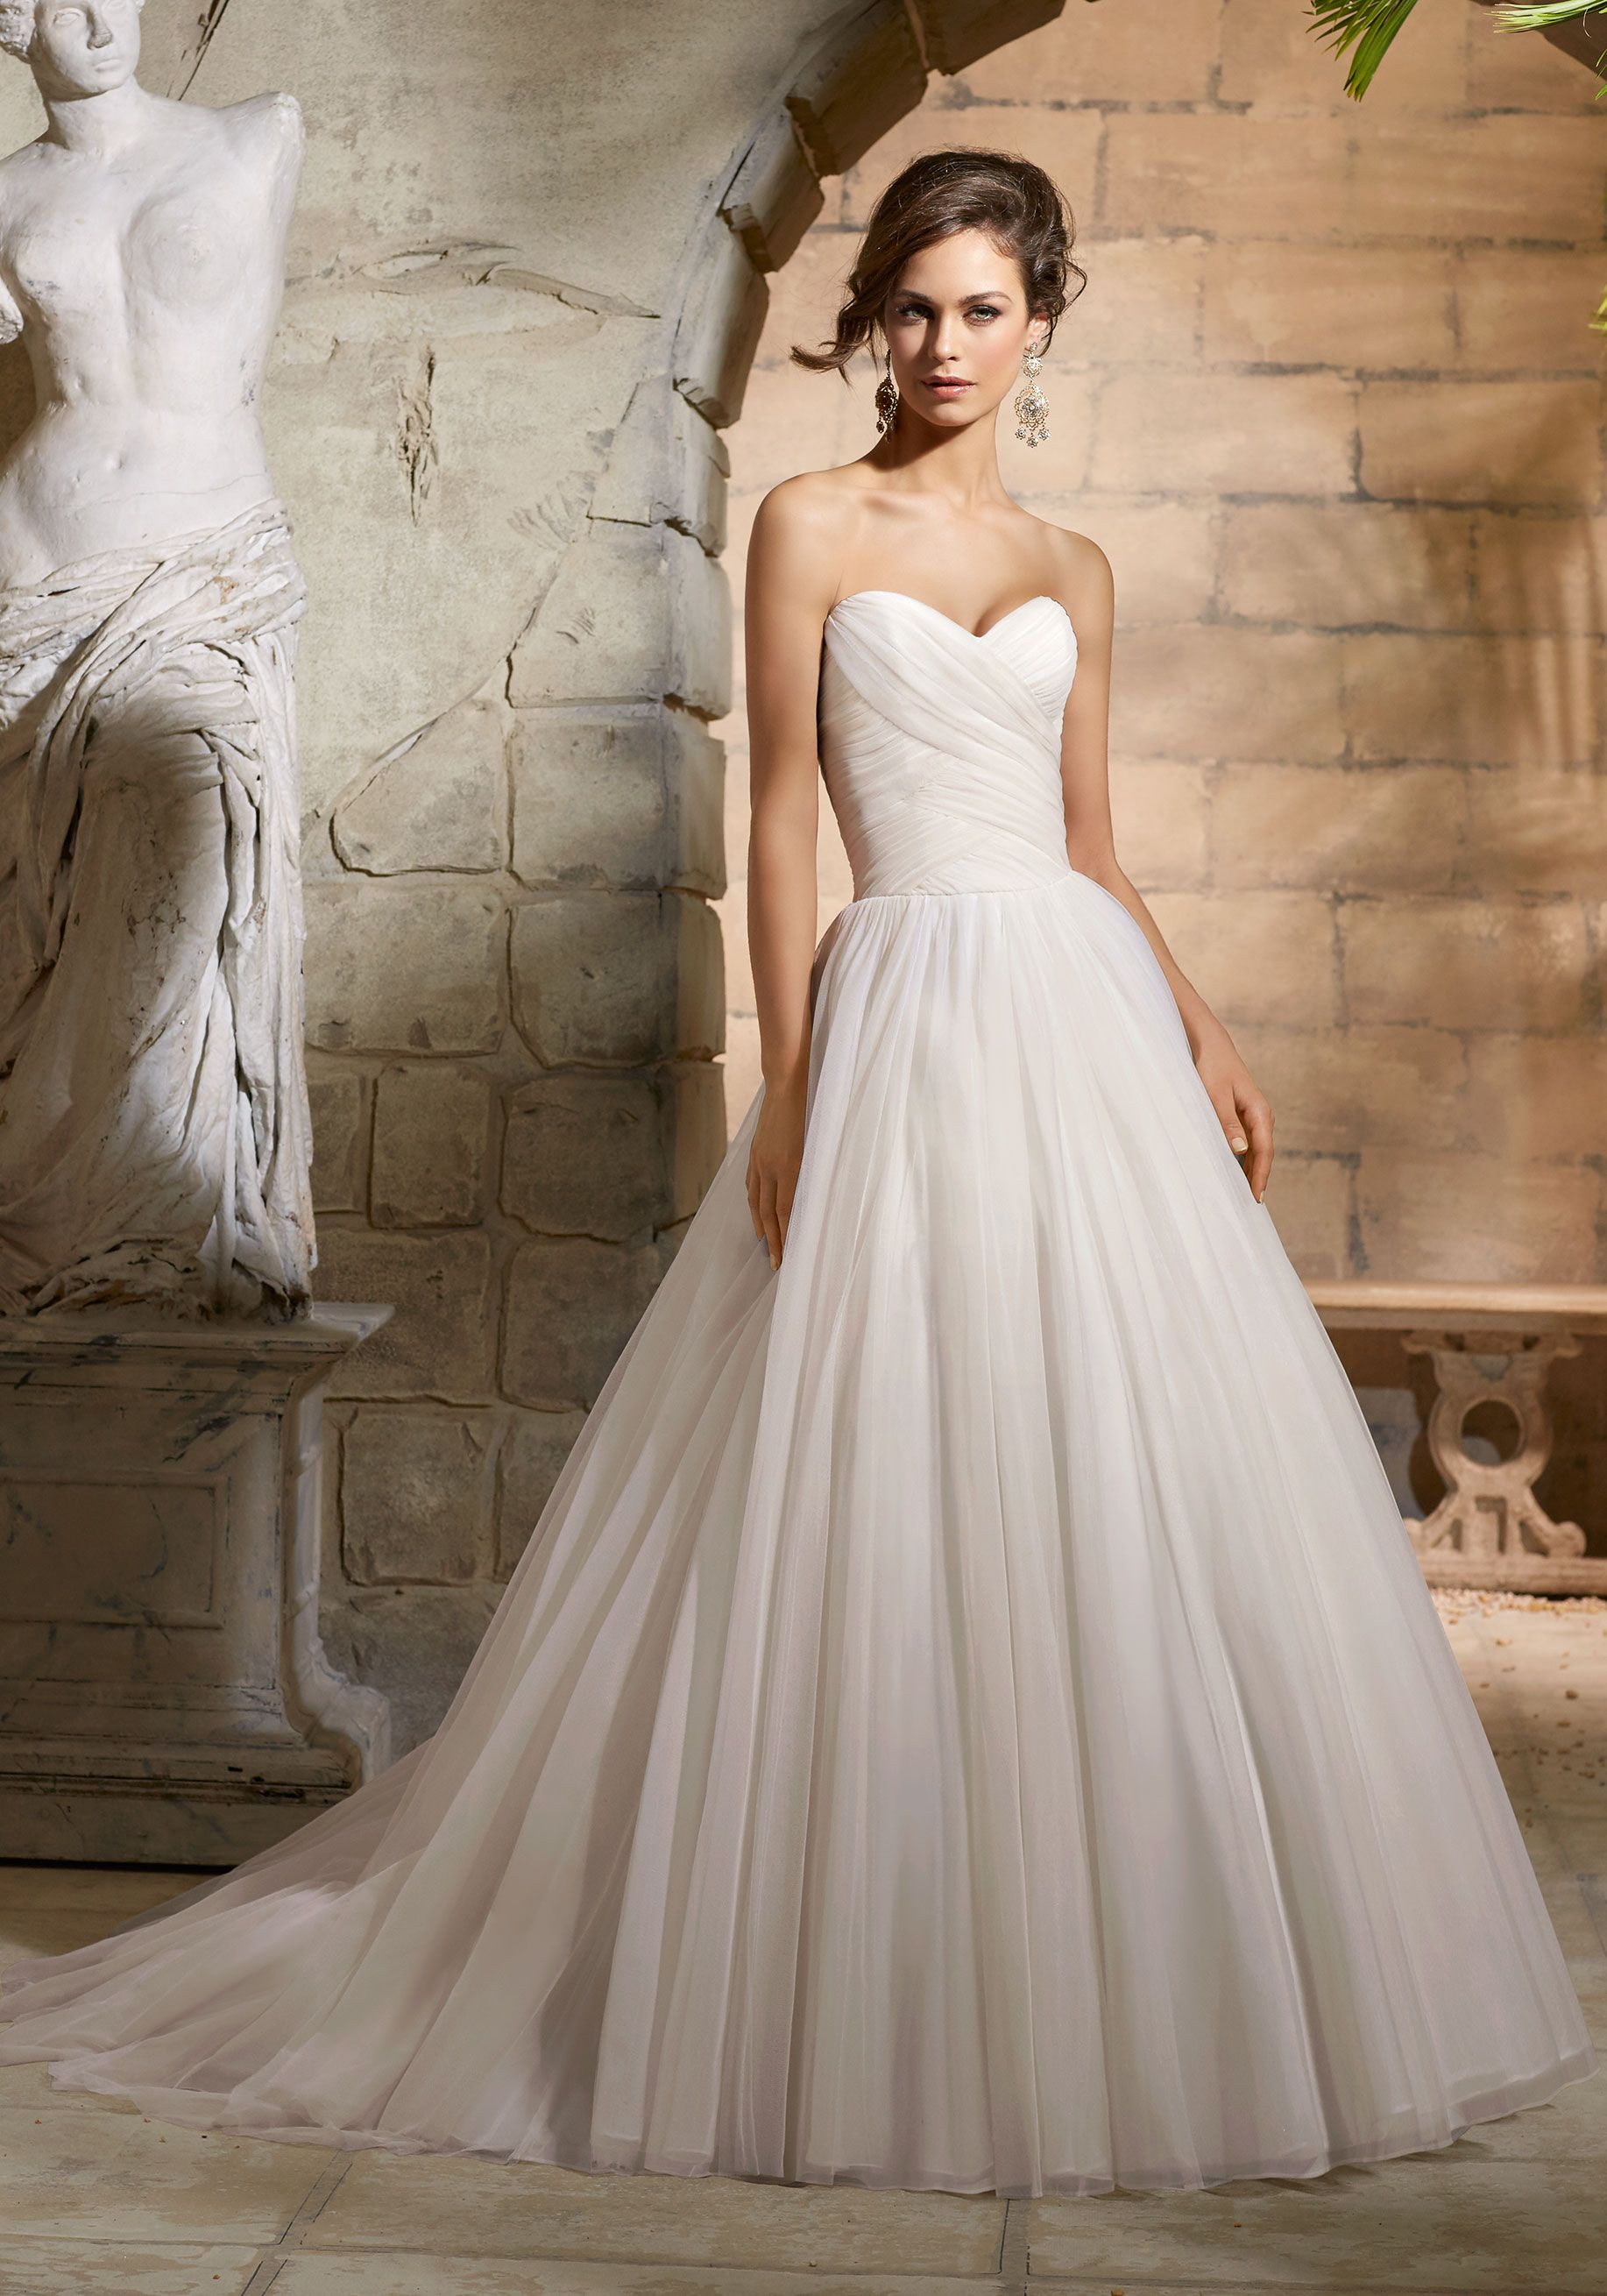 A blank canvas of simplicity, this unadorned A line Bridal Dress ...